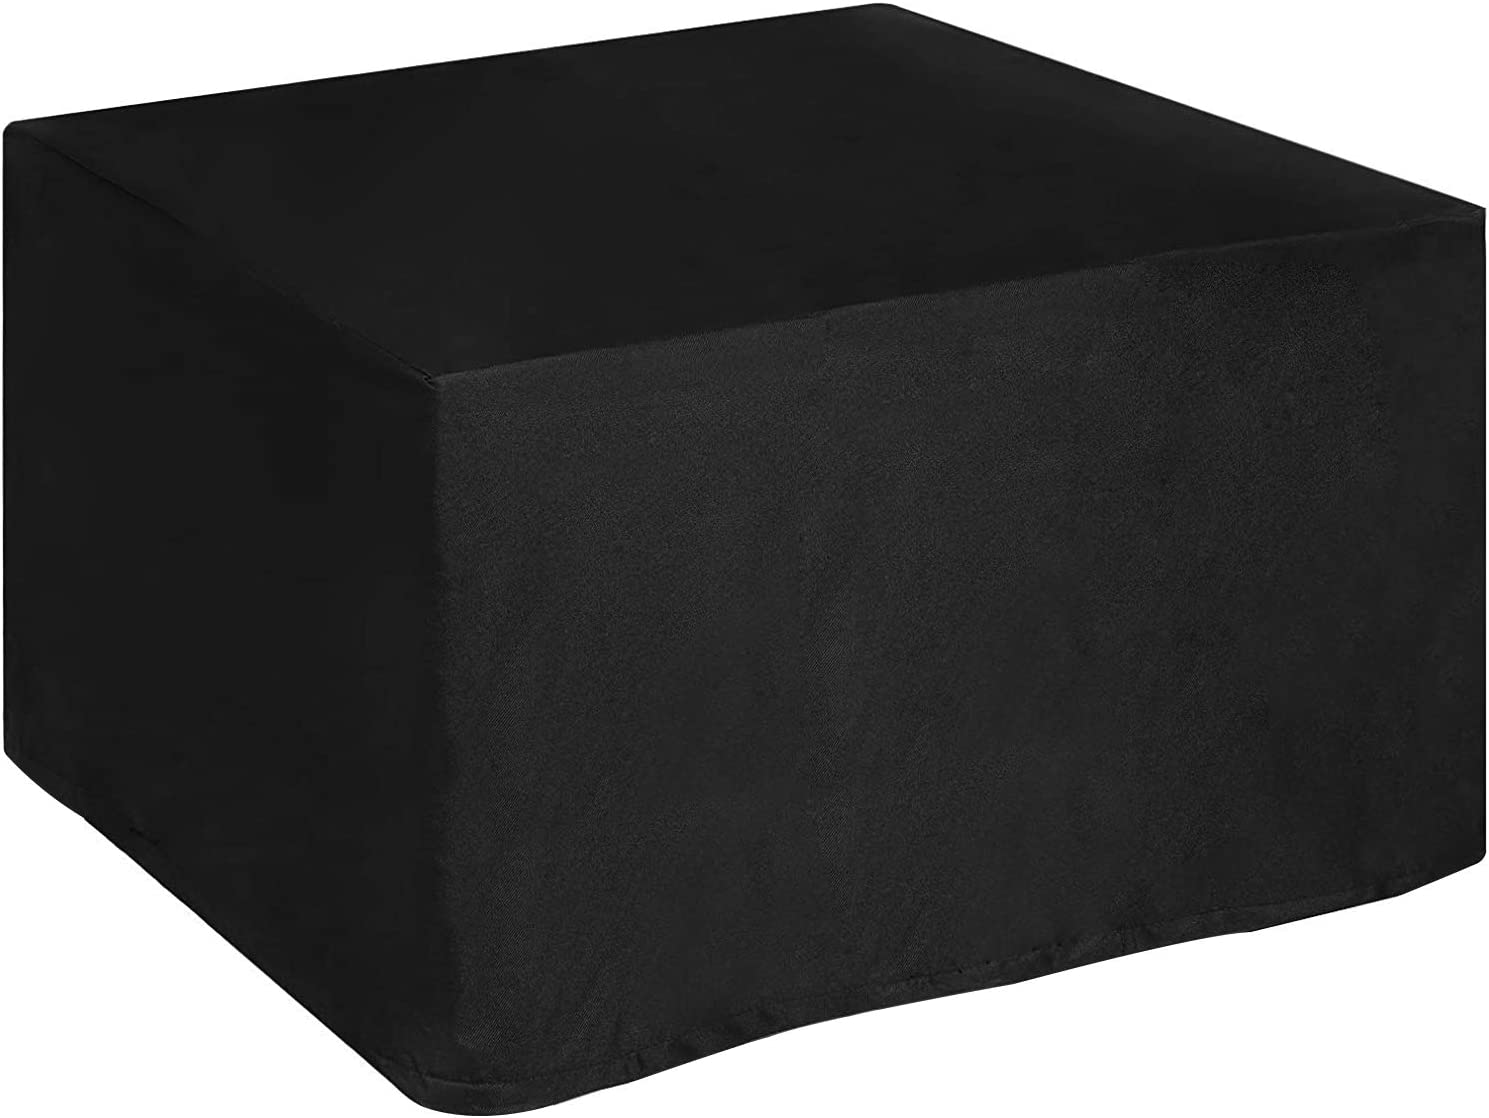 GloryShine Fire Pit Max 52% OFF Cover Recommendation Square Squ Waterproof Duty 600D Heavy